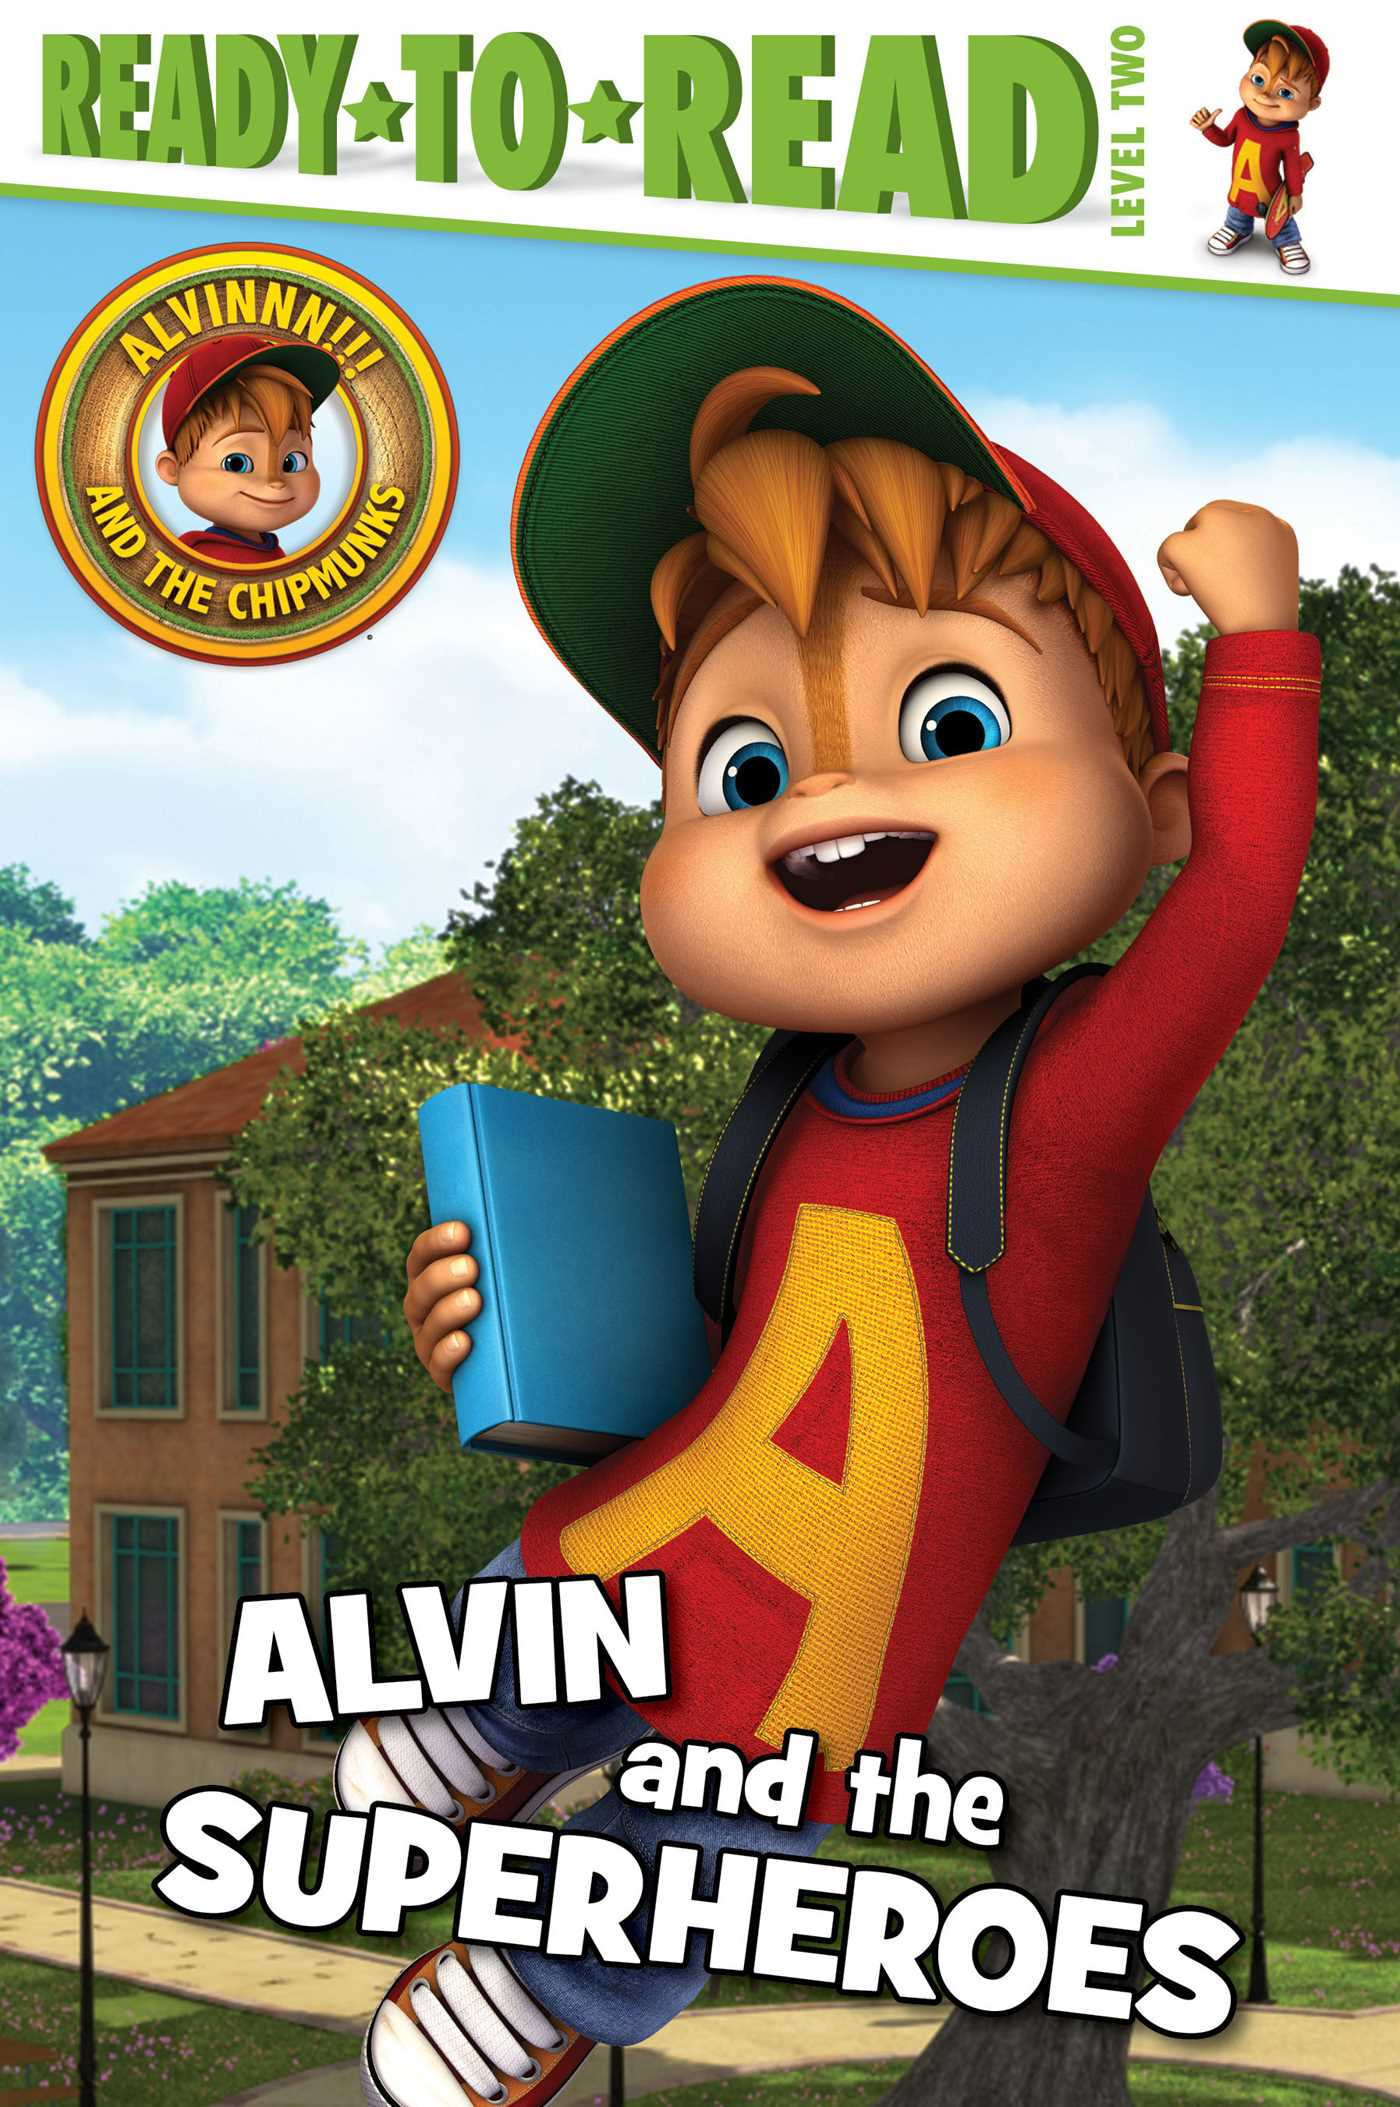 Alvin and the superheroes 9781534400092 hr